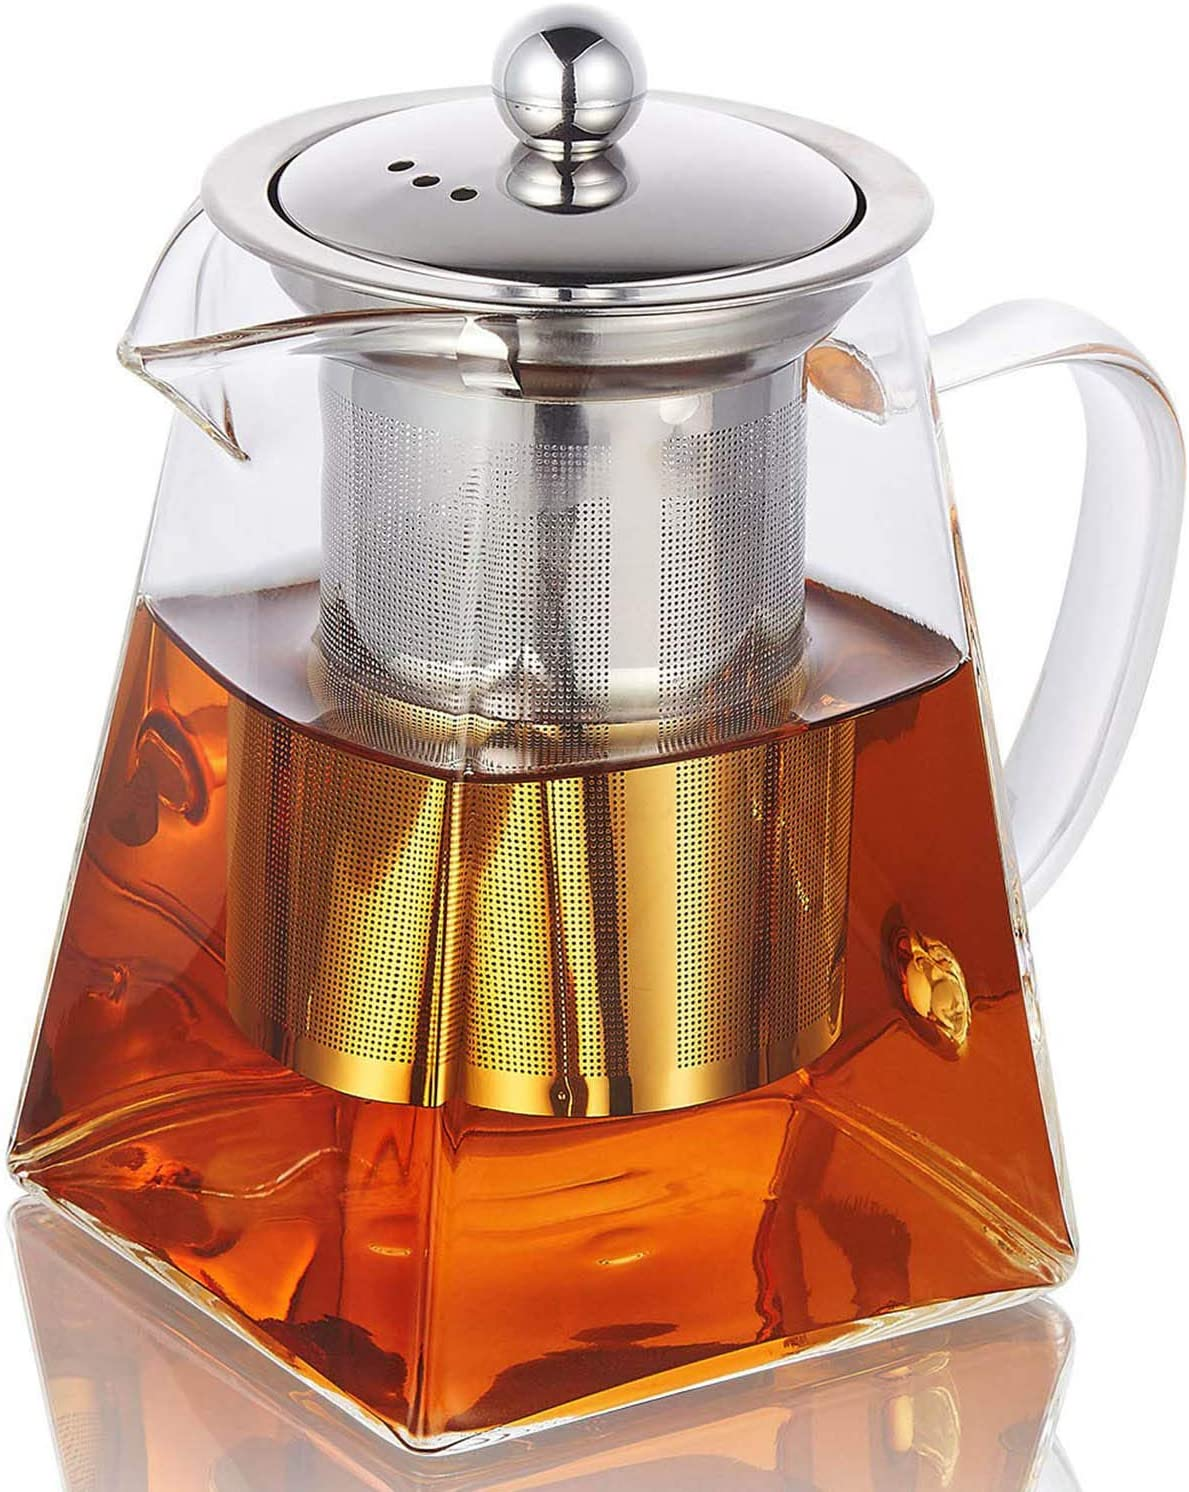 CoreLife Glass Teapot with Infuser/Removable Steel Strainer Tea Maker 750ML Kettle for Loose Tea (25 oz.)